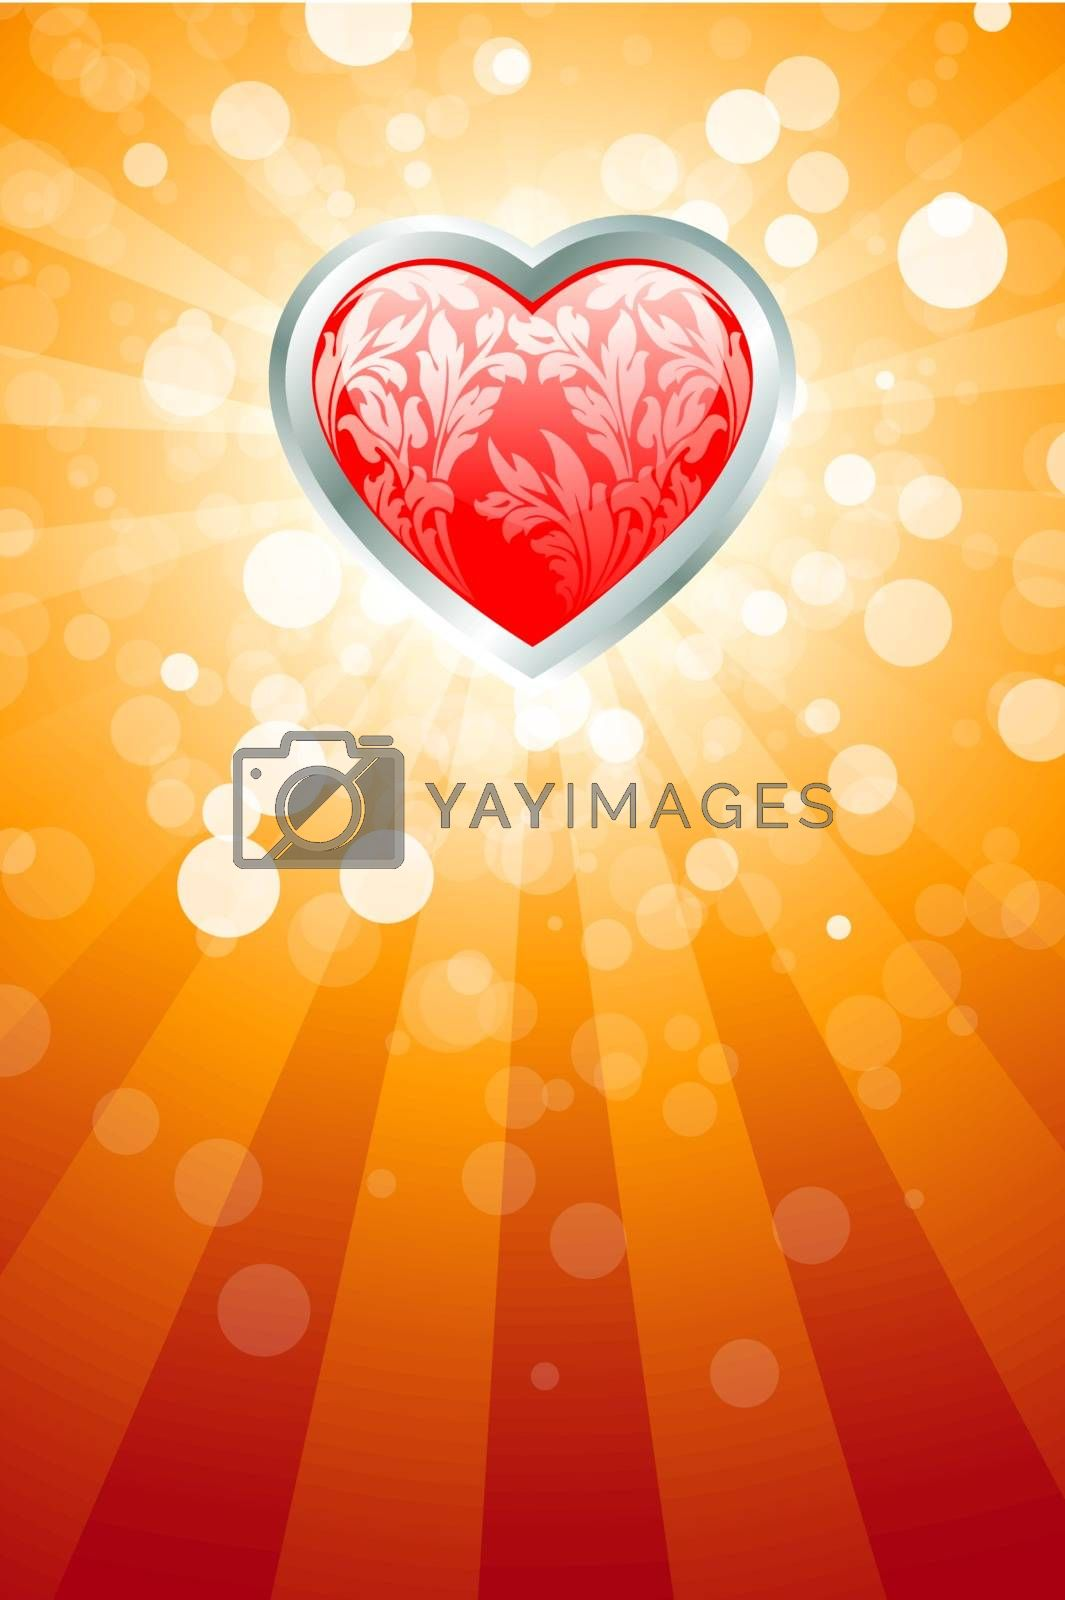 Abstract Valentines Day background with heart and rays